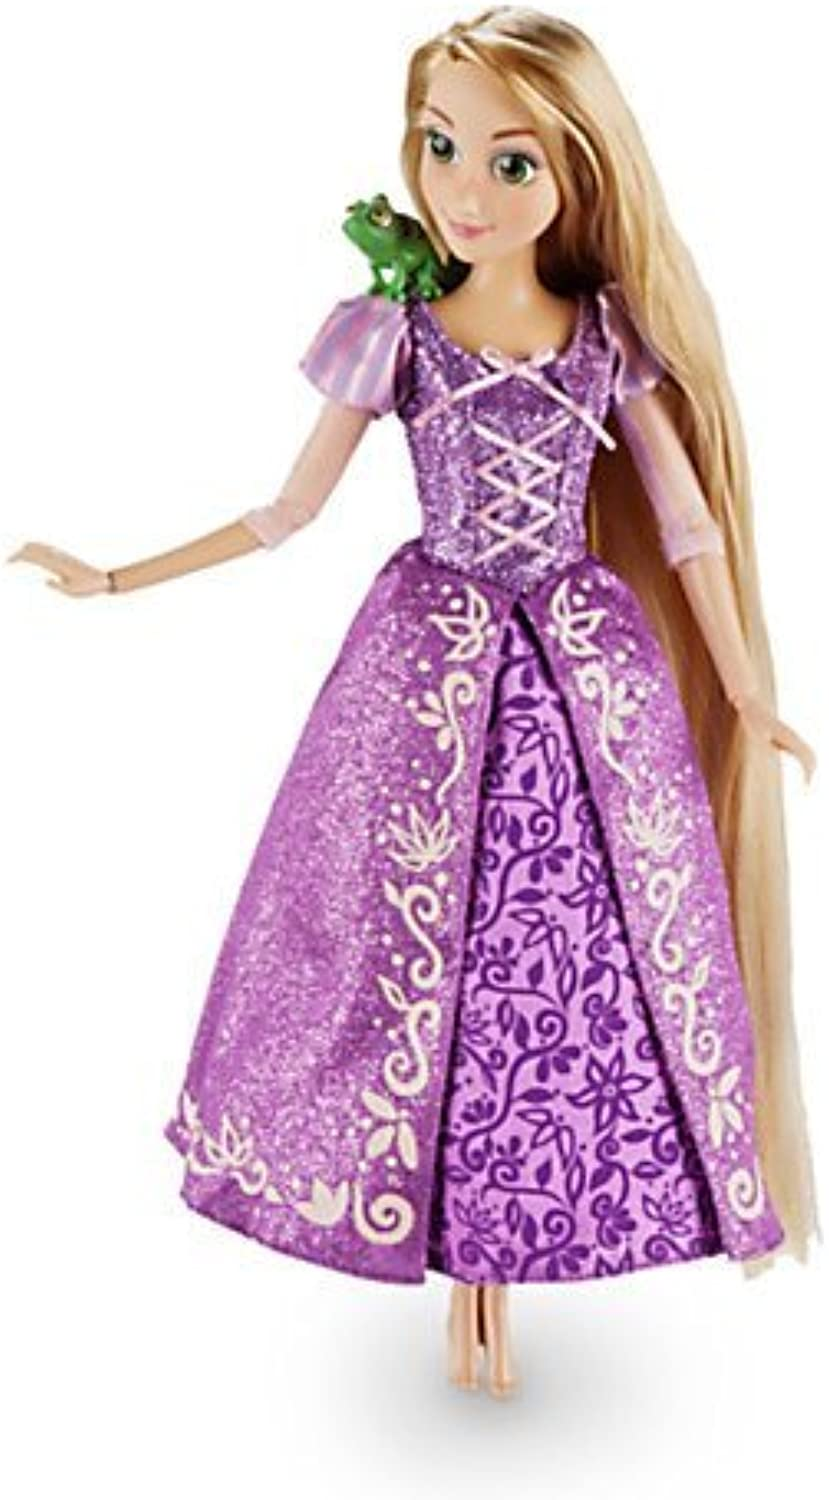 Disney Store 2016 Rapunzel Classic Doll with Pascal Figure - 12